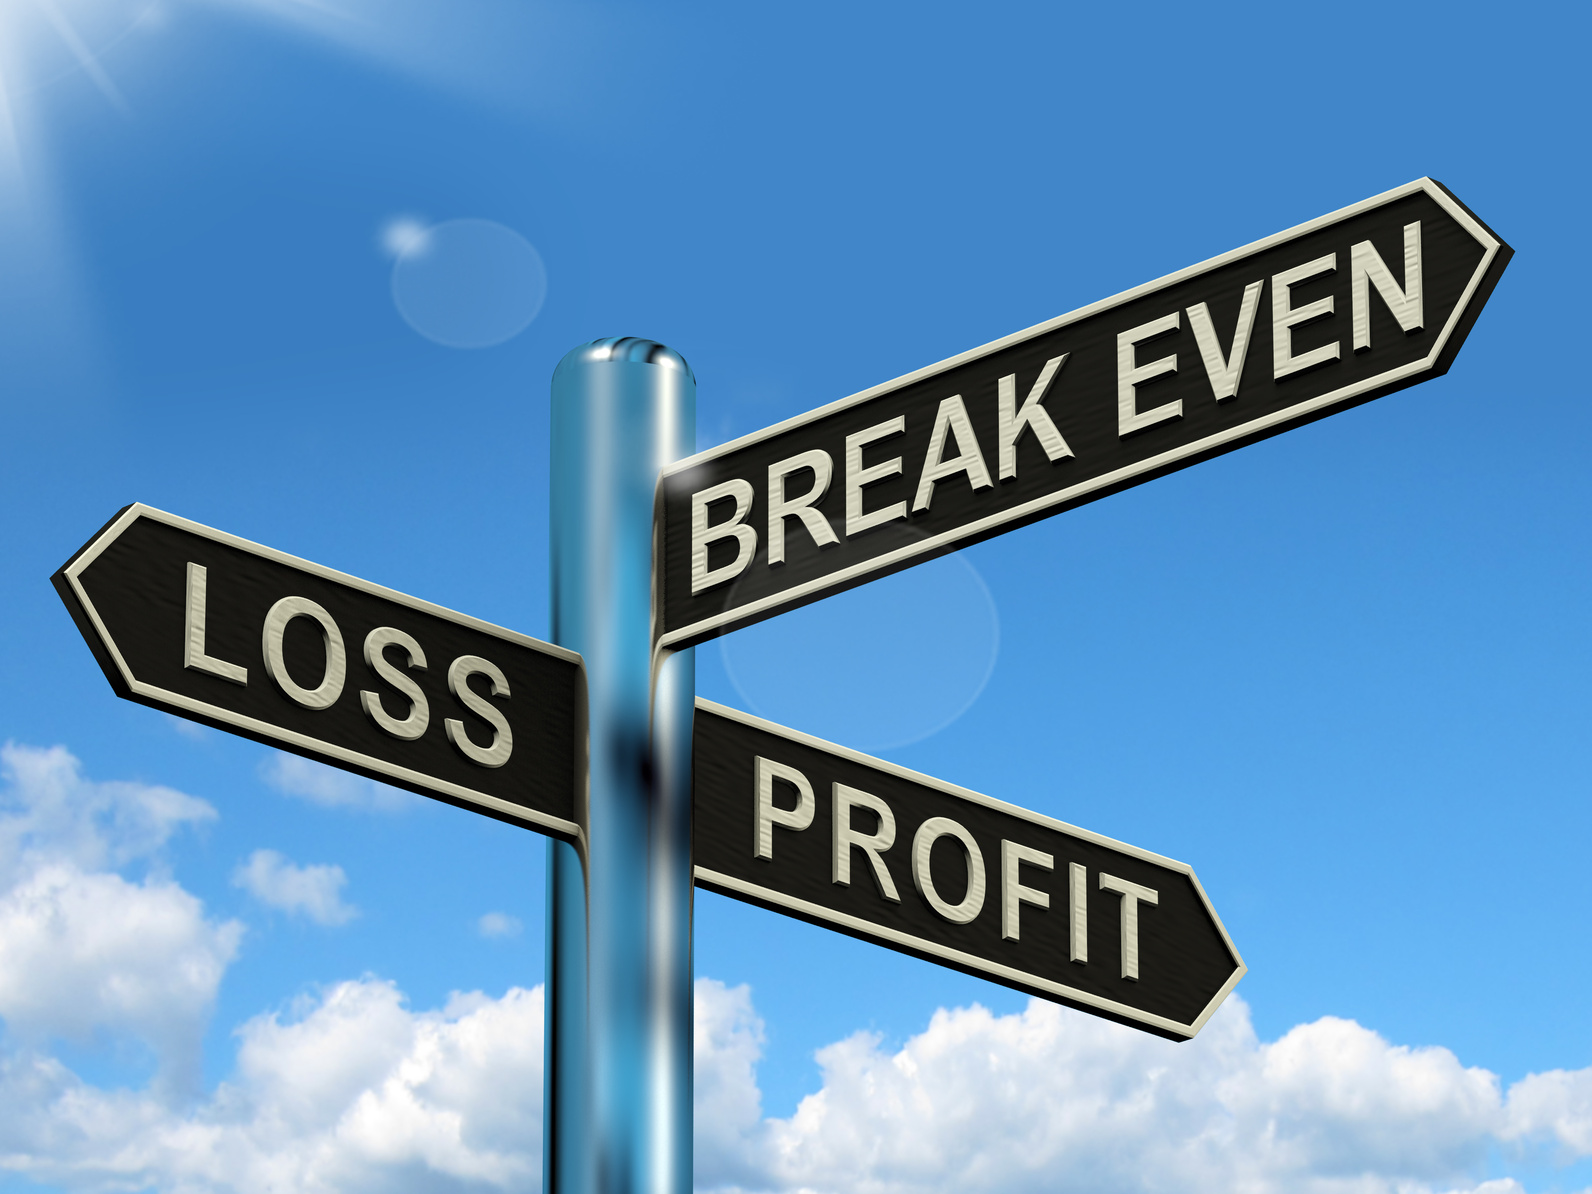 Loss Profit Or Break Even Signpost Showing Investment Earnings And Profits